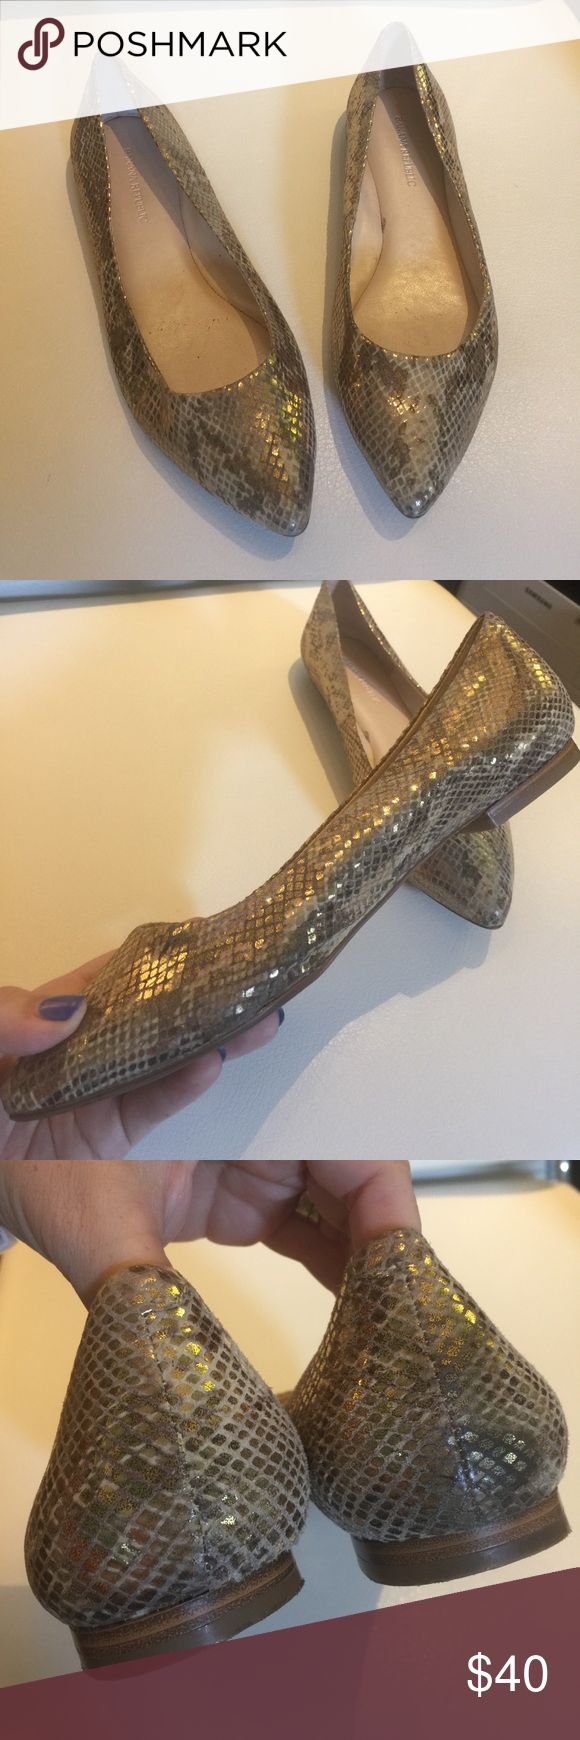 Banana Republic Gold Snake Skin Pointed Flats Banana Republic Gold Snake Skin  Pointed Flats.  Chic and elegant animal print gold Flats.  Cute dresses up or down.  Slight wear on bottoms but overall great condition. Banana Republic Shoes Flats & Loafers